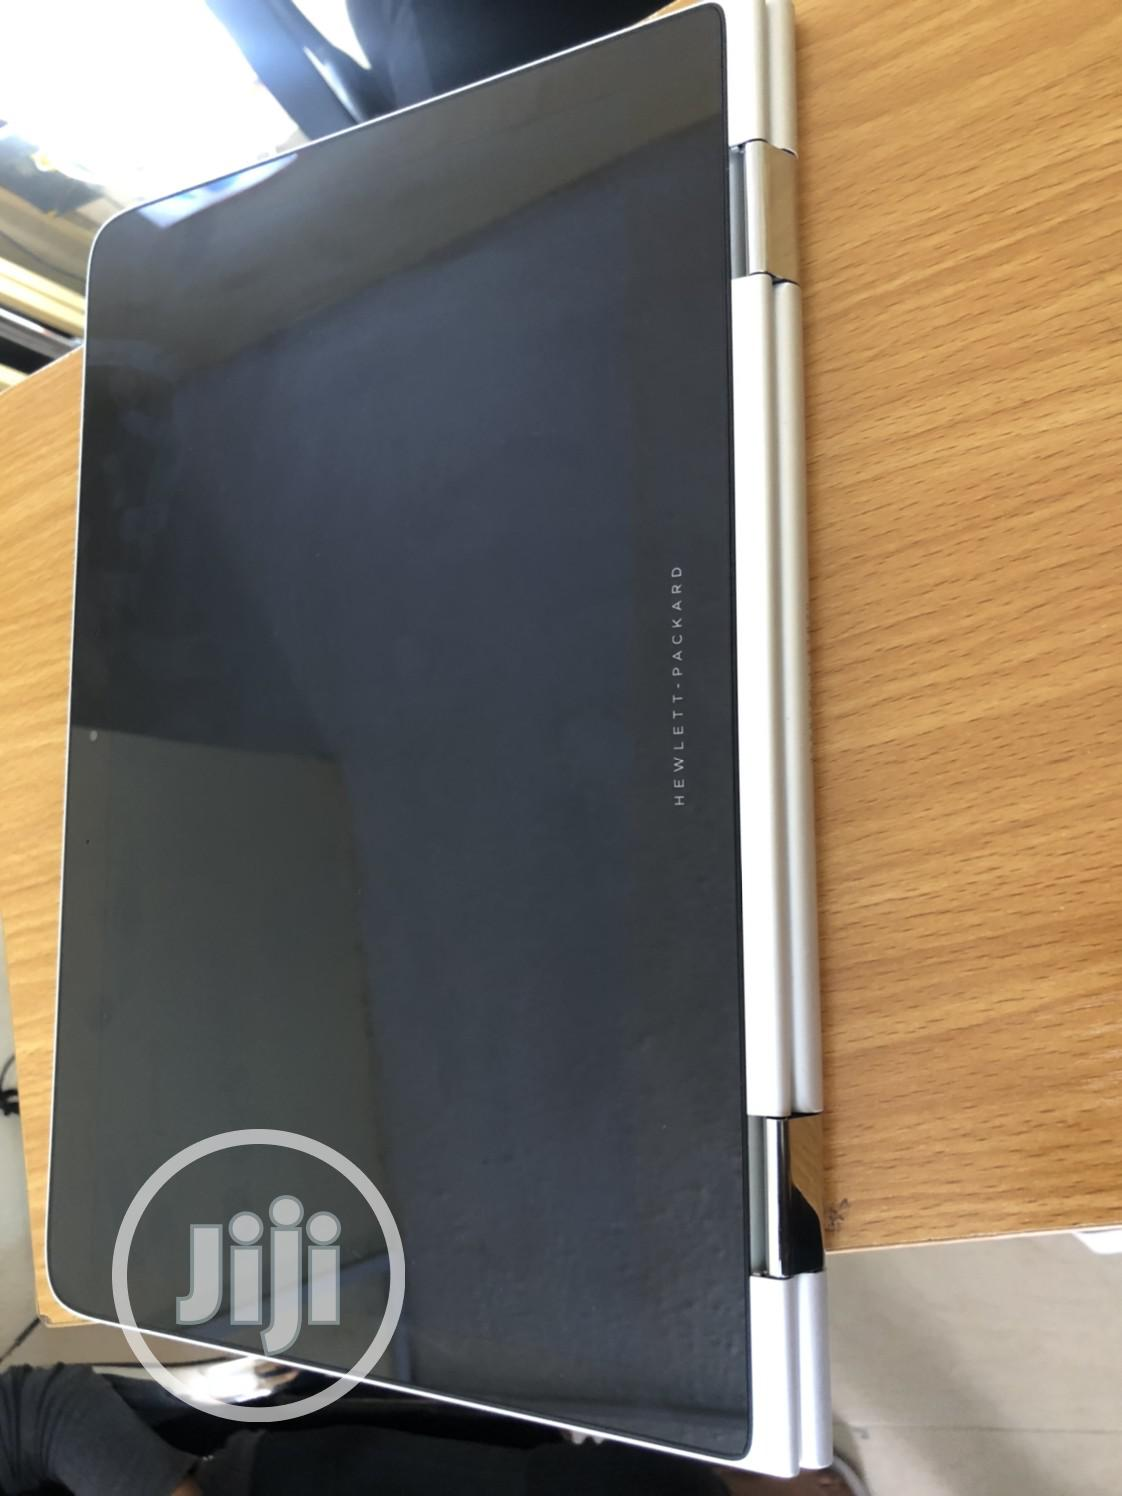 Laptop HP Spectre X360 13t 8GB Intel Core I5 SSD 256GB   Laptops & Computers for sale in Wuse 2, Abuja (FCT) State, Nigeria